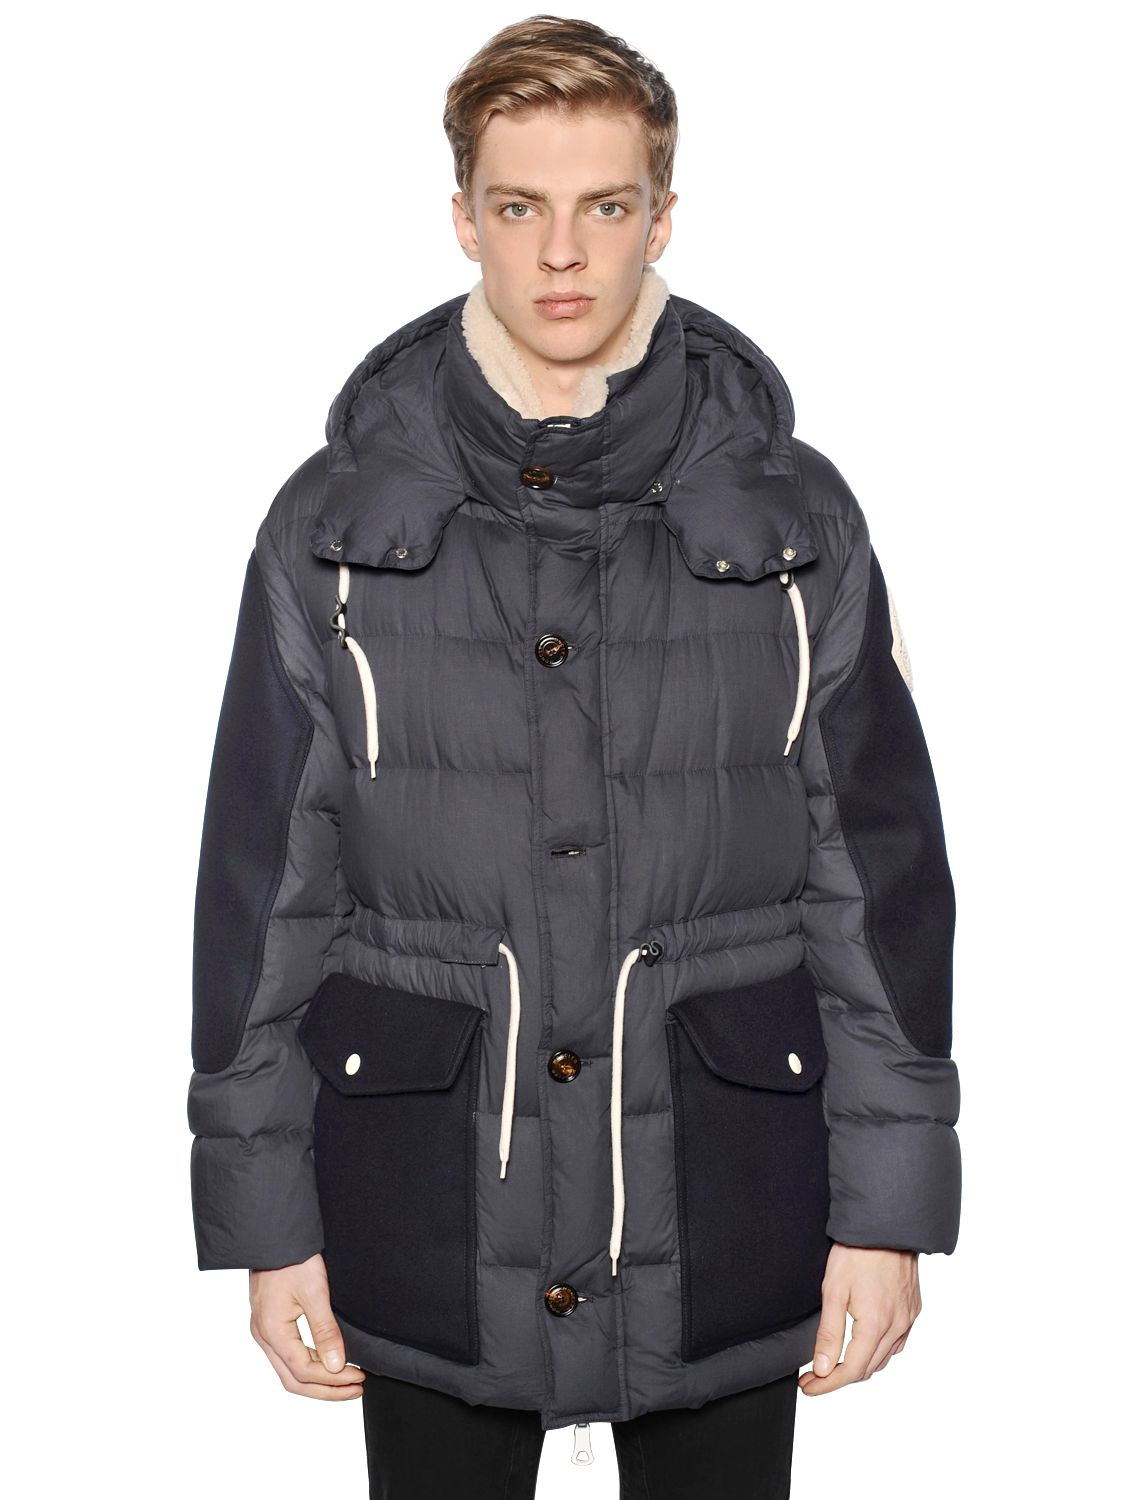 moncler x ami orland quilted jacket